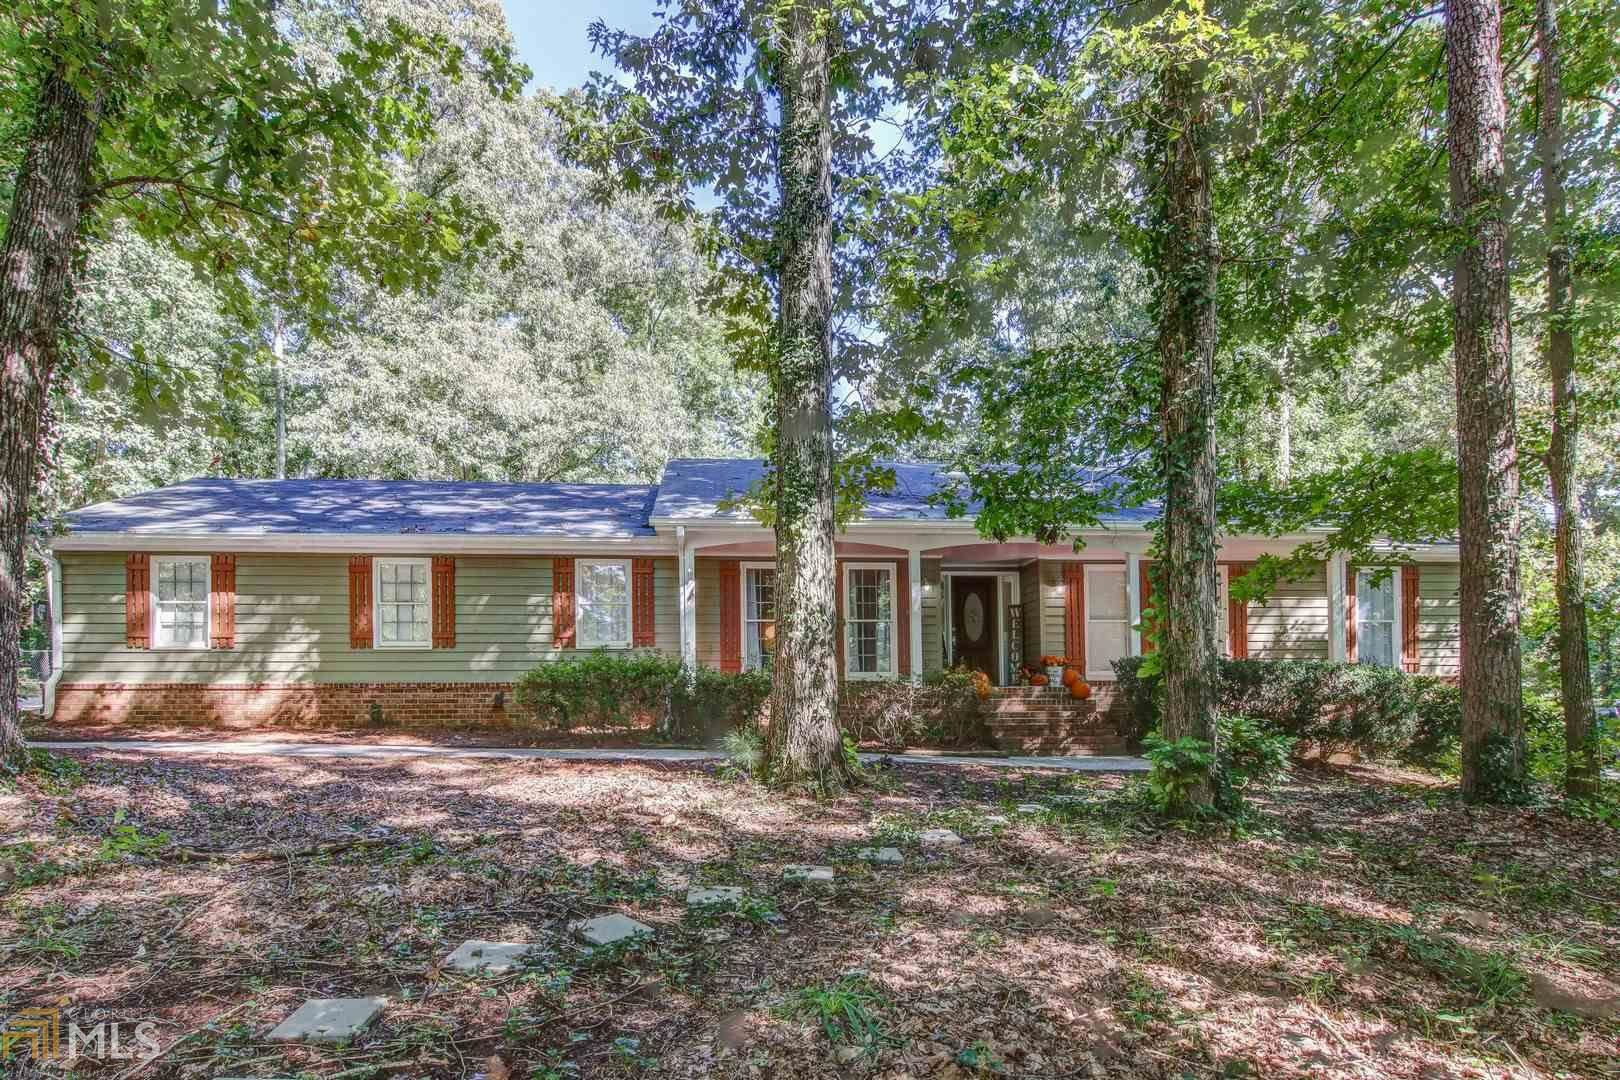 5016 Lake Forest Dr, Conyers, GA 30094 - MLS#: 8866107